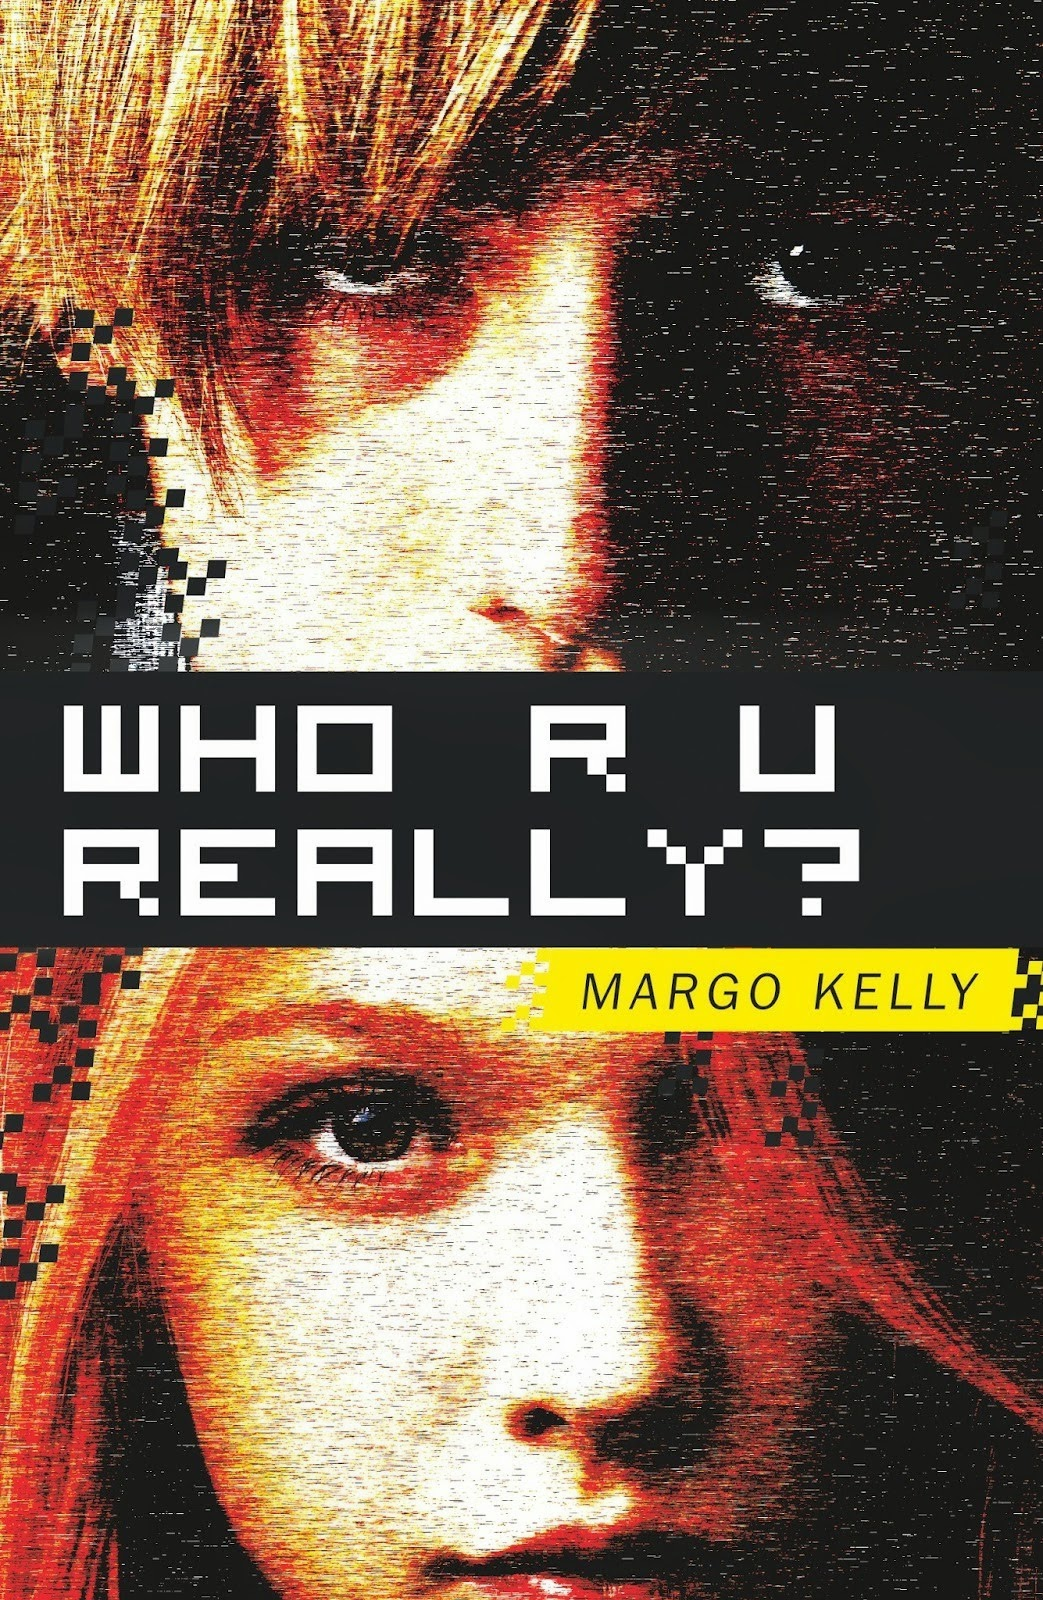 https://www.goodreads.com/book/show/21444891-who-r-u-really?from_search=true